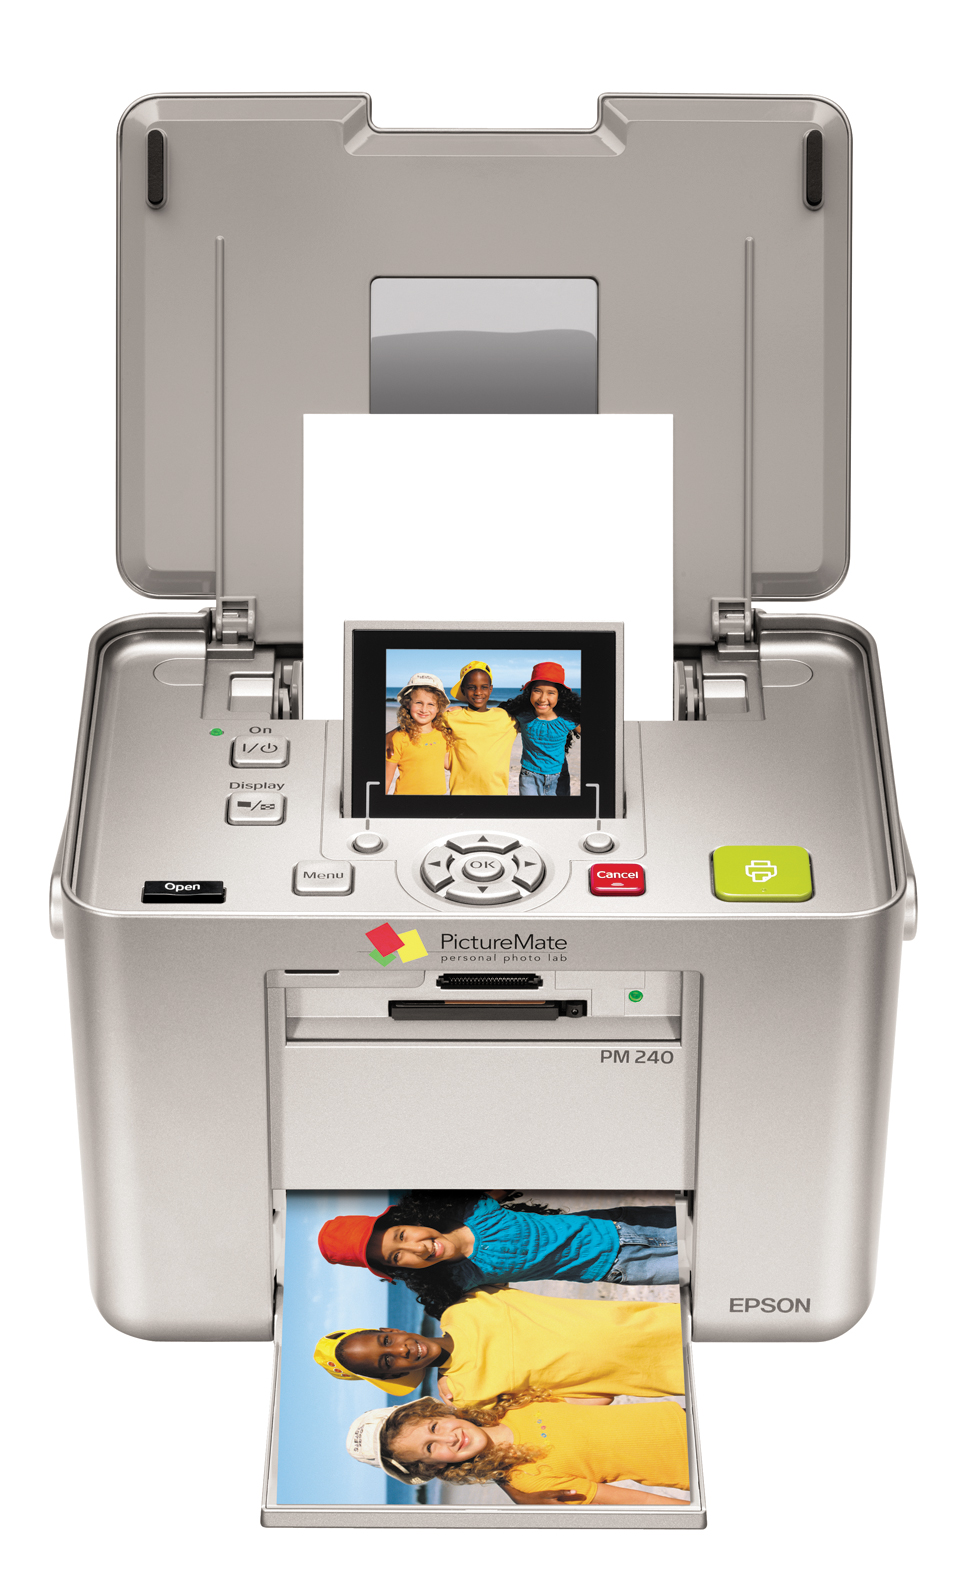 EPSON PICTUREMATE PRINTER DRIVER FOR MAC